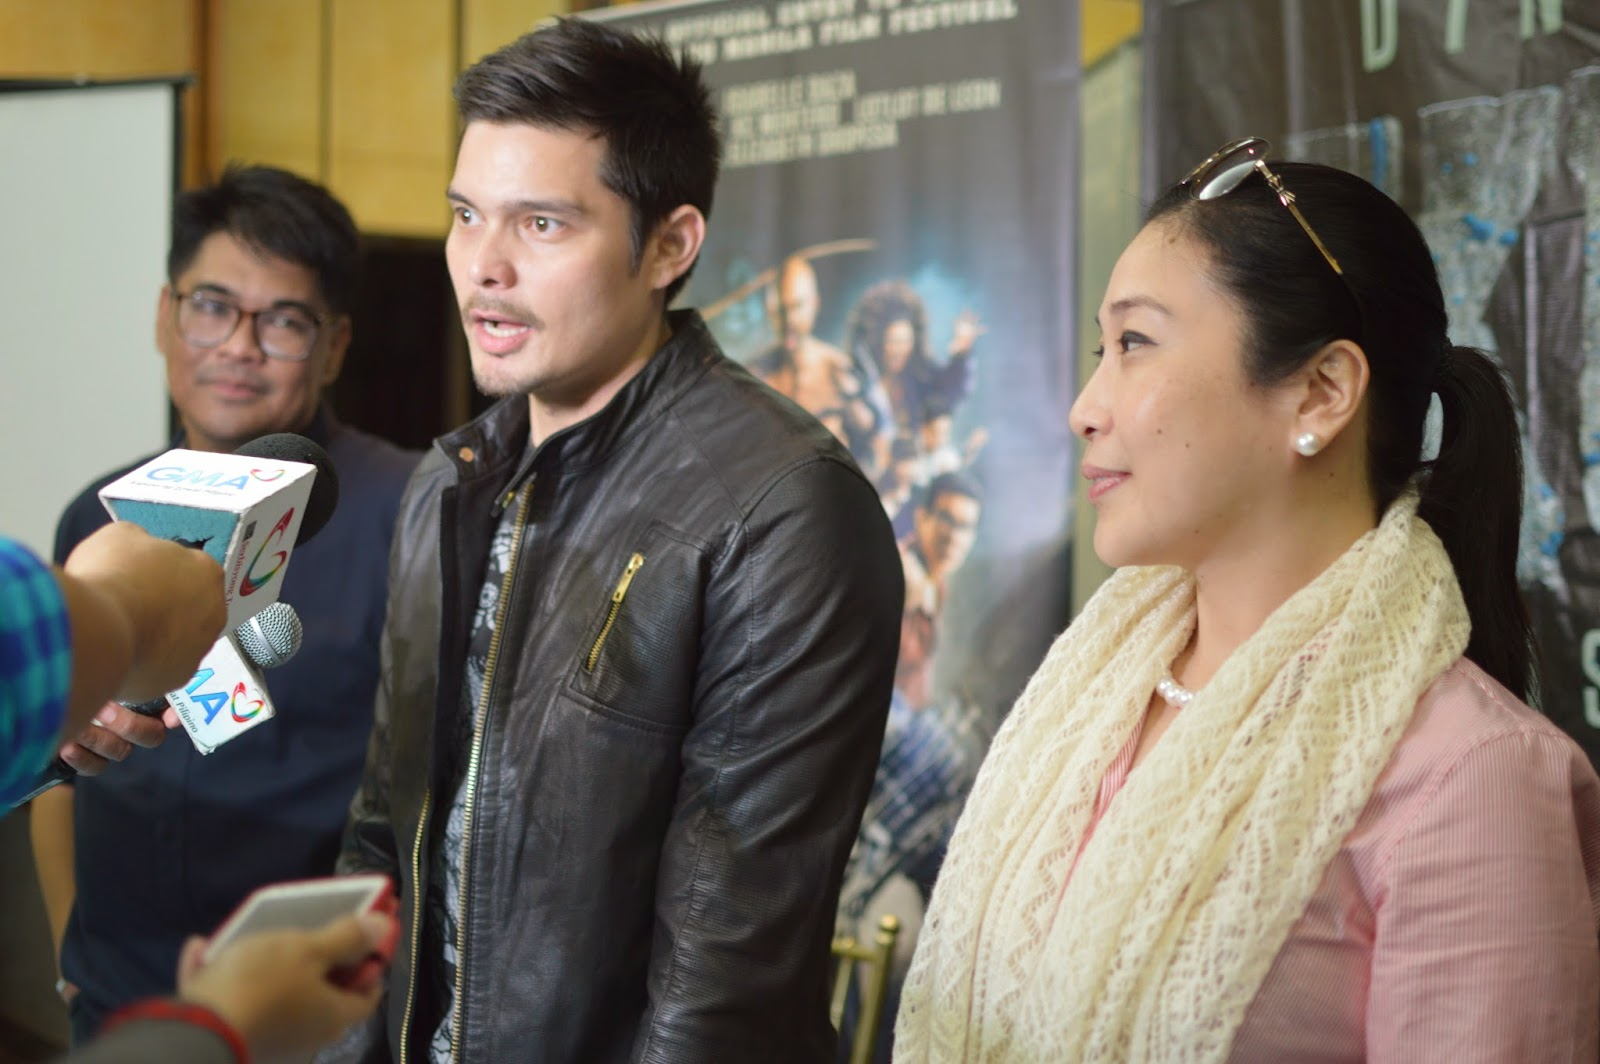 Dingdong Dantes with Ms. Gozon